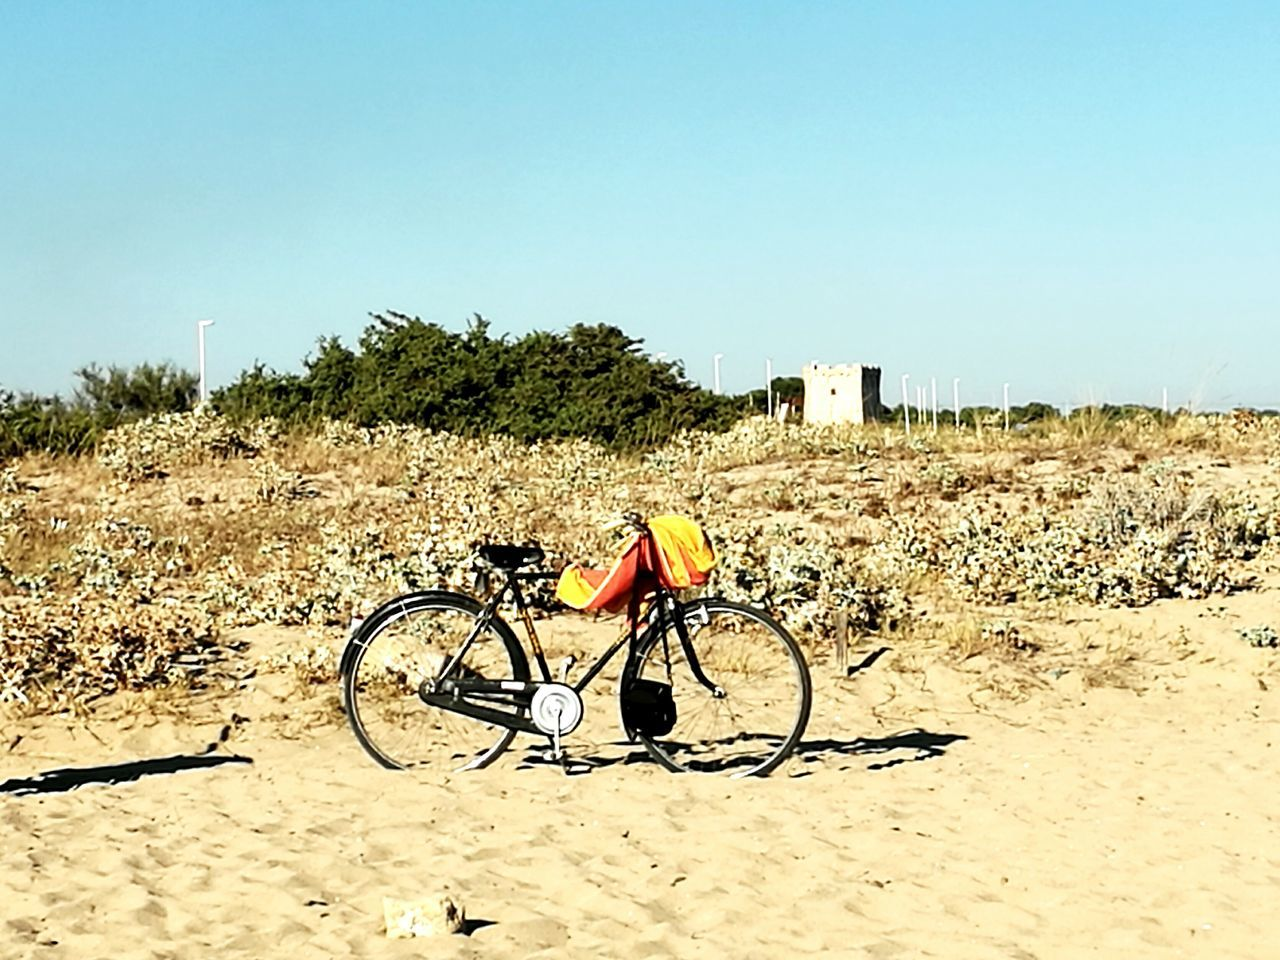 Taking Photos Check This Out Hello World 43 Golden Moments Relaxing Beach Beachphotography Seaside Sea Sun Bycicle Salento Taranto Puglia South Italy Puglia